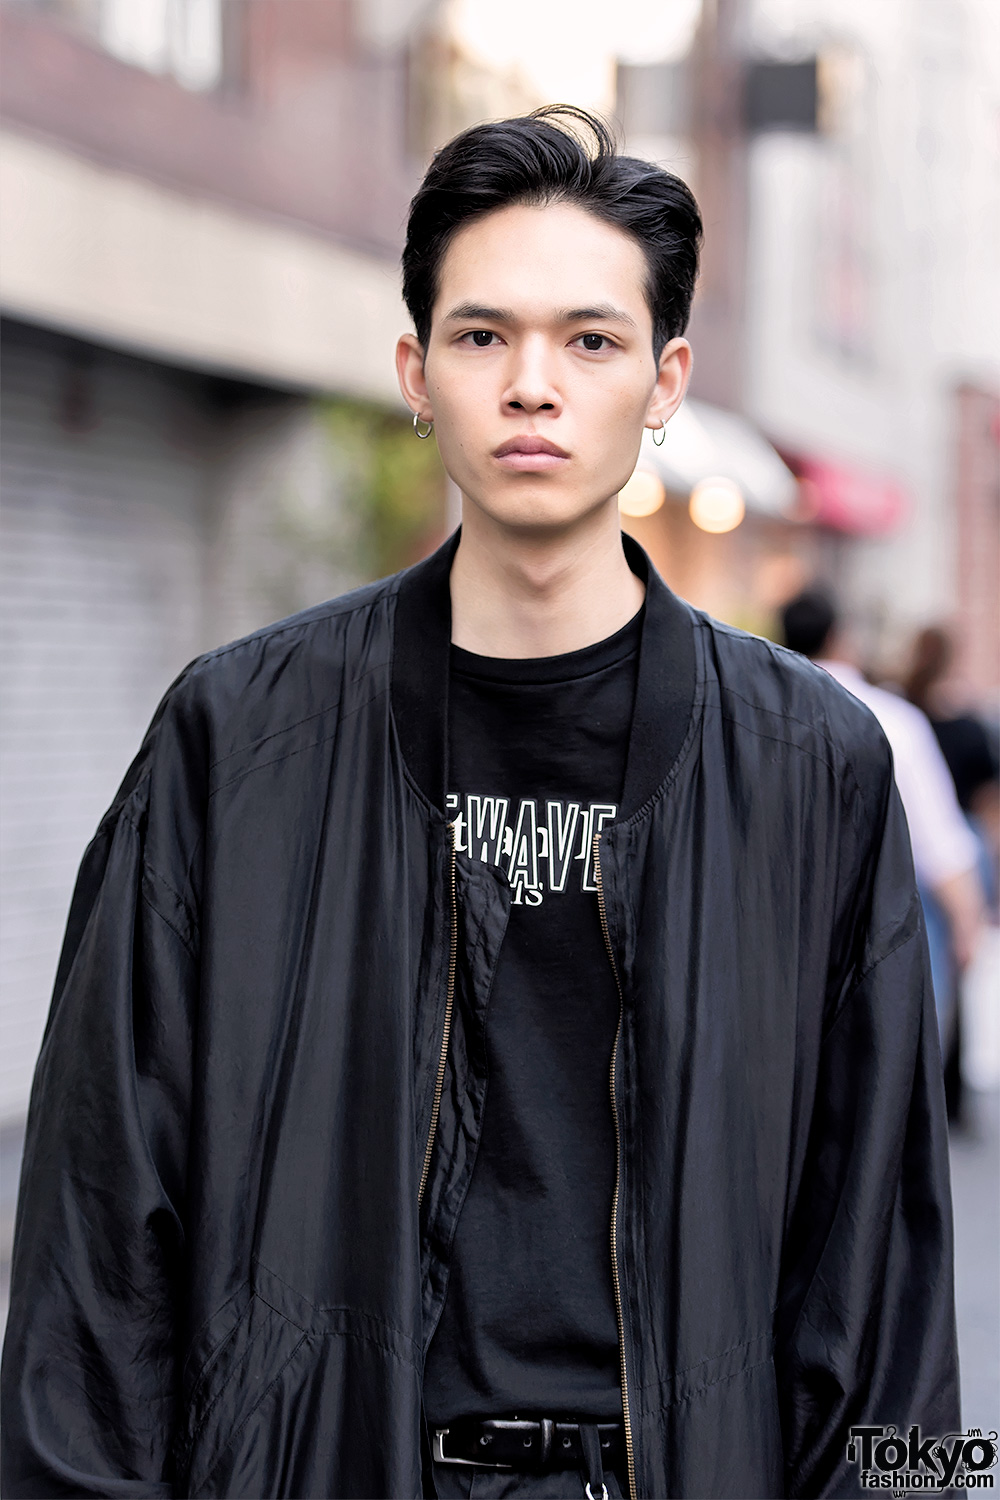 Harajuku Male Models Wearing Lad Musician Dior Homme And Vintage Fashion